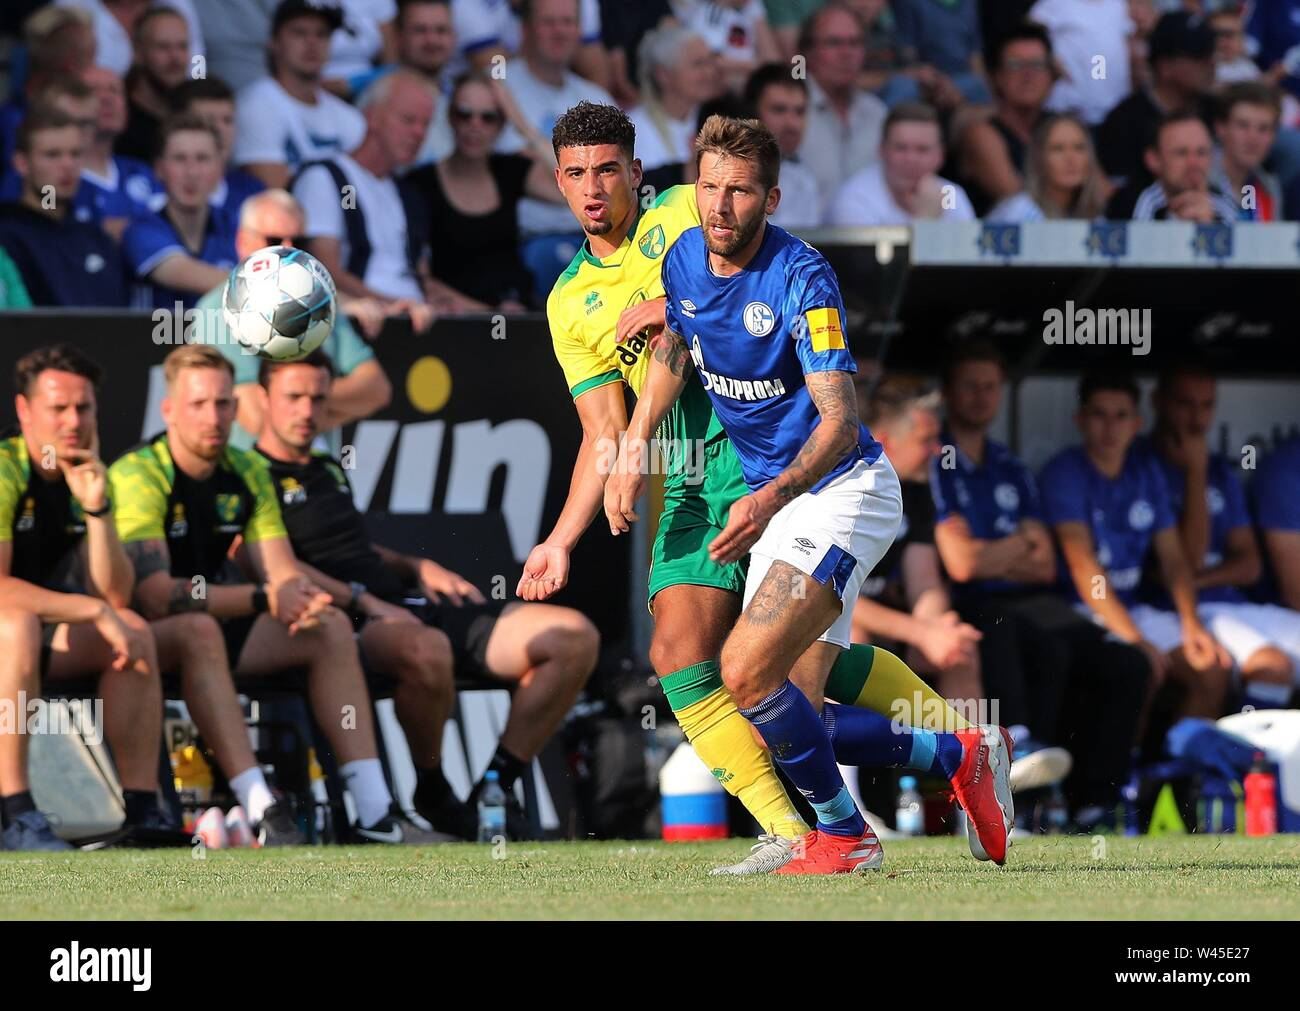 Lotte, Deutschland. 19th July, 2019. firo: 19.07.2019, football, 1.Bundesliga, season 2019/2020, friendly match, FC Schalke 04 - Norwich City Guido BURGSTALLER, Schalke, right, duels | usage worldwide Credit: dpa/Alamy Live News - Stock Image